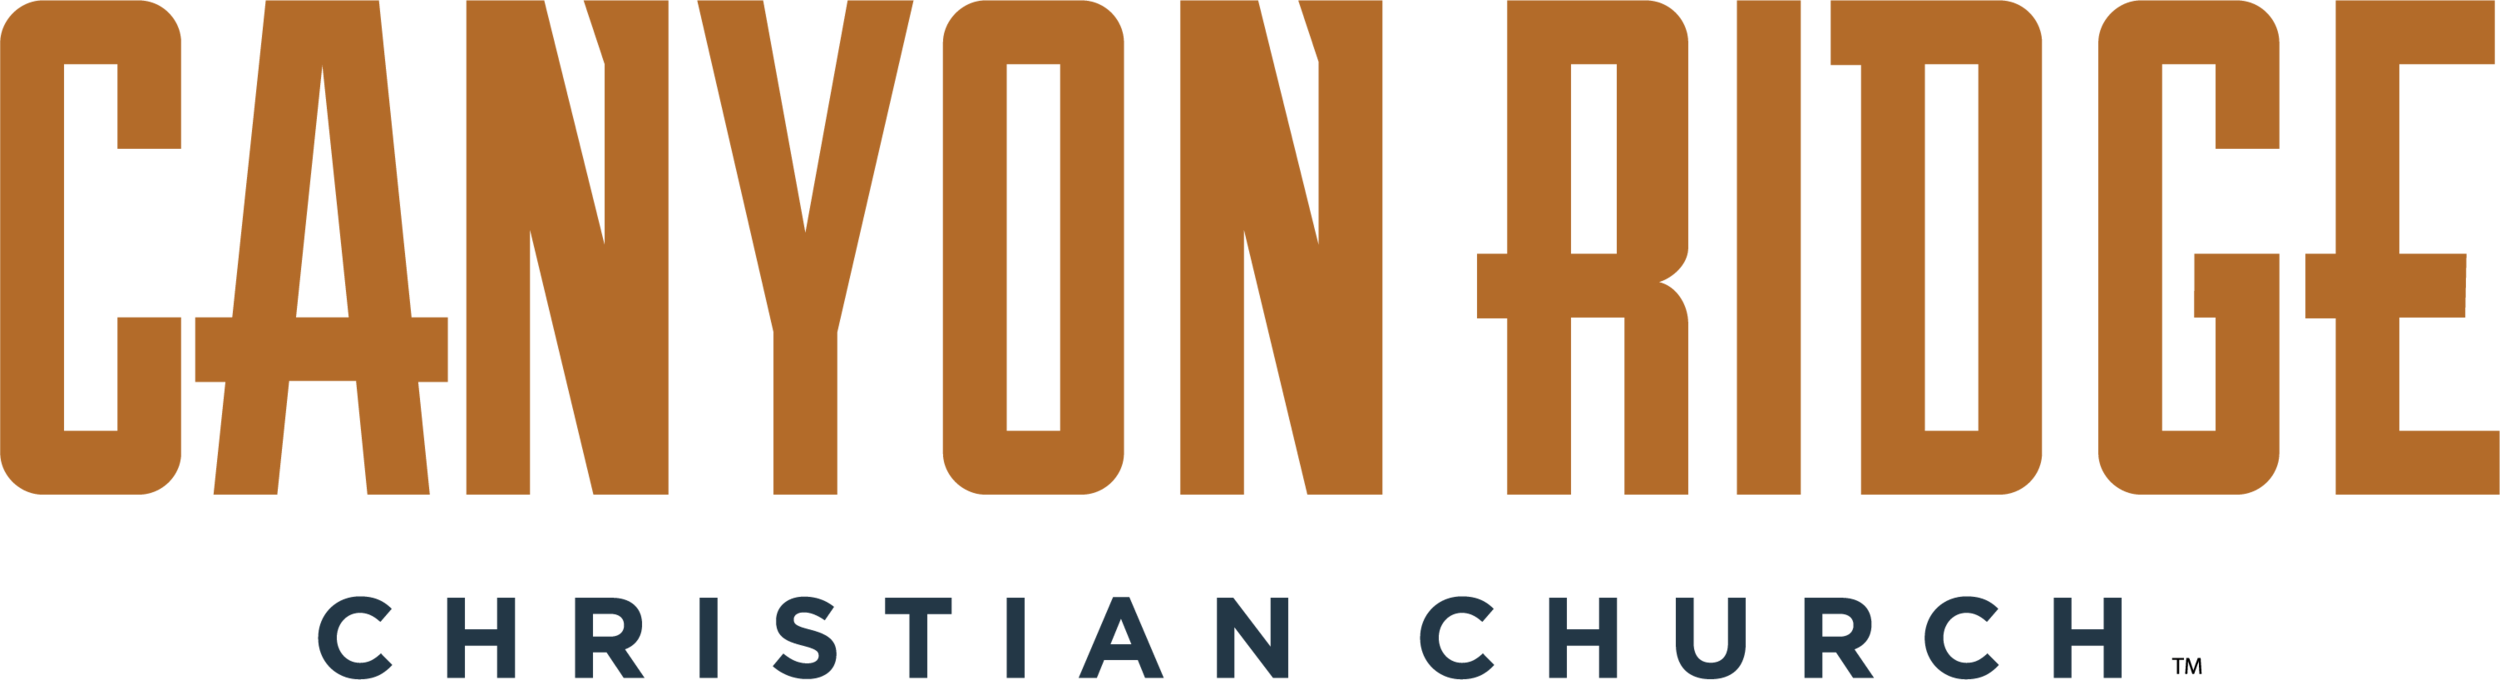 Canyon Ridge MainLogoOrangeTM.png